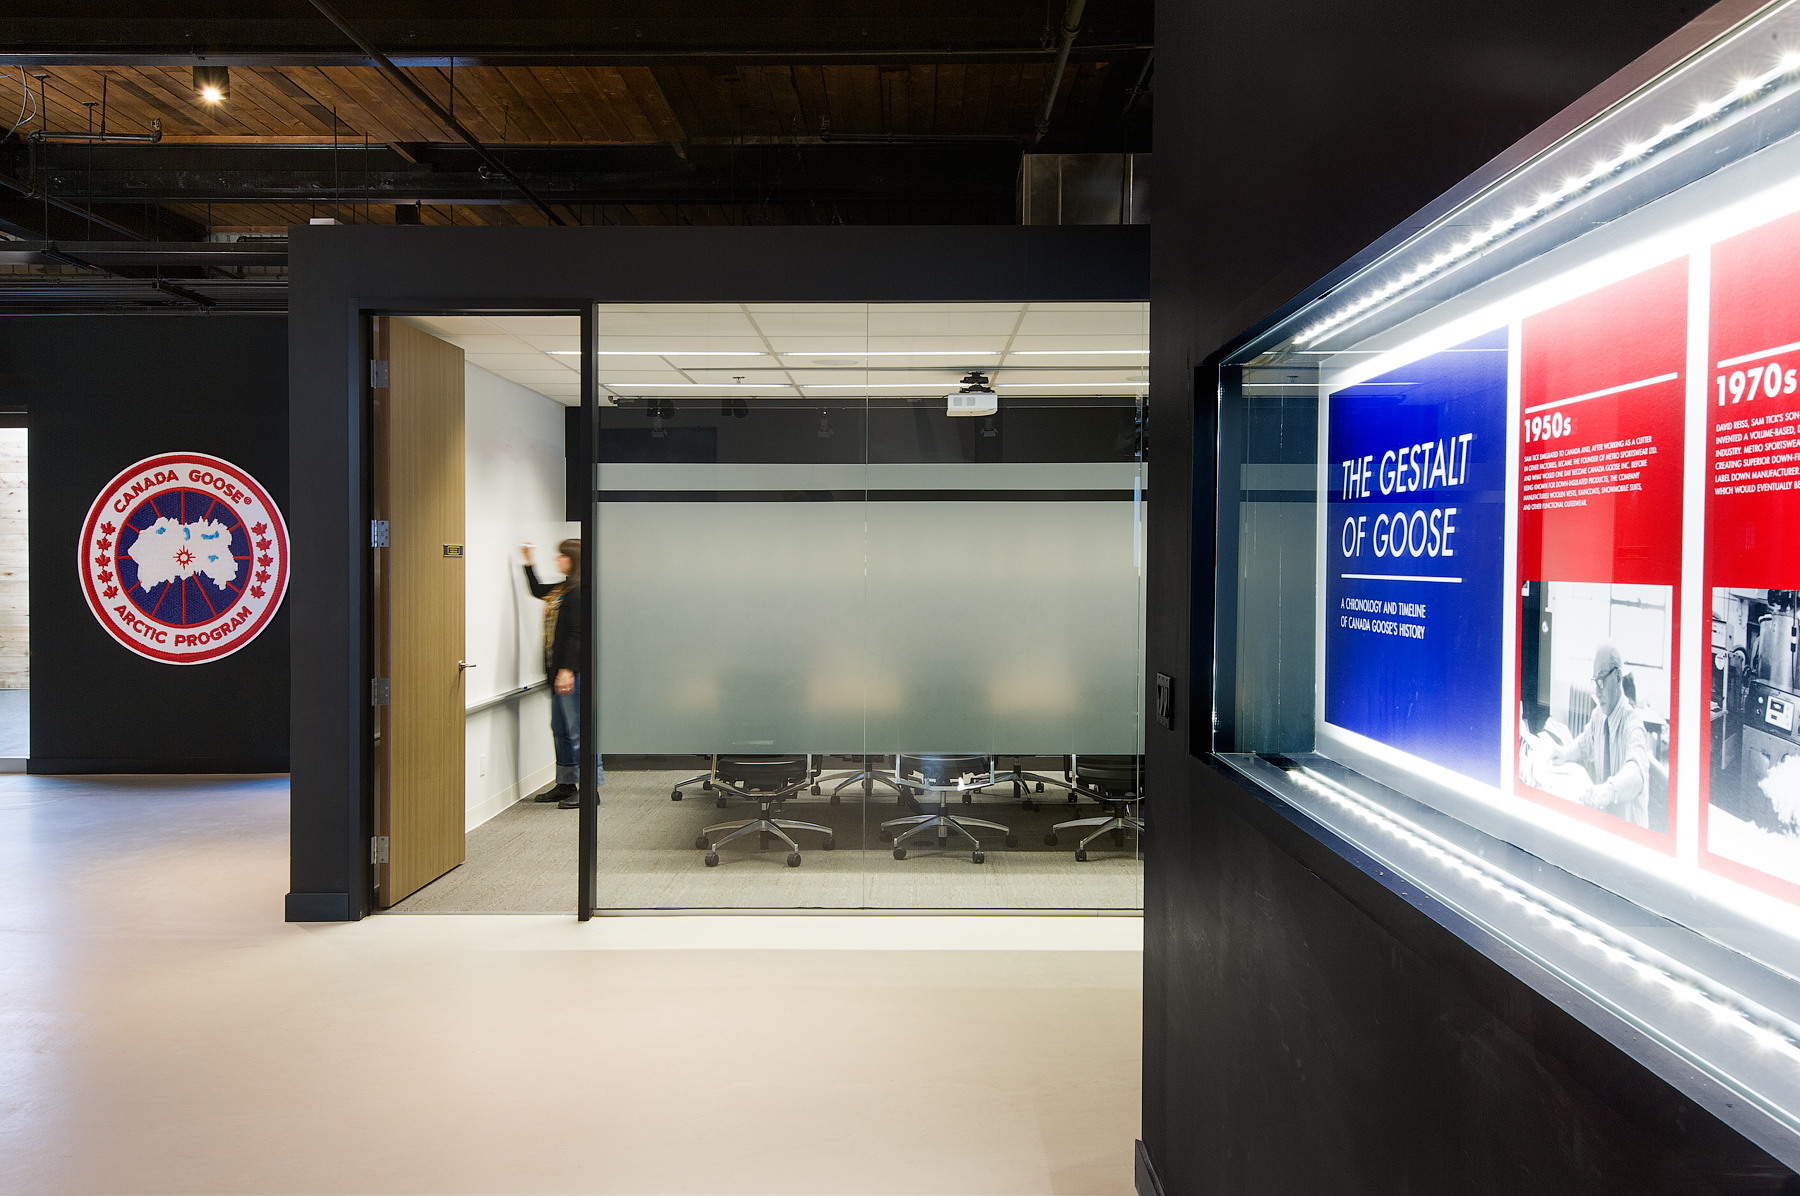 Canada Goose hallway with black walls featuring company logo, and view into meeting room with glass walls